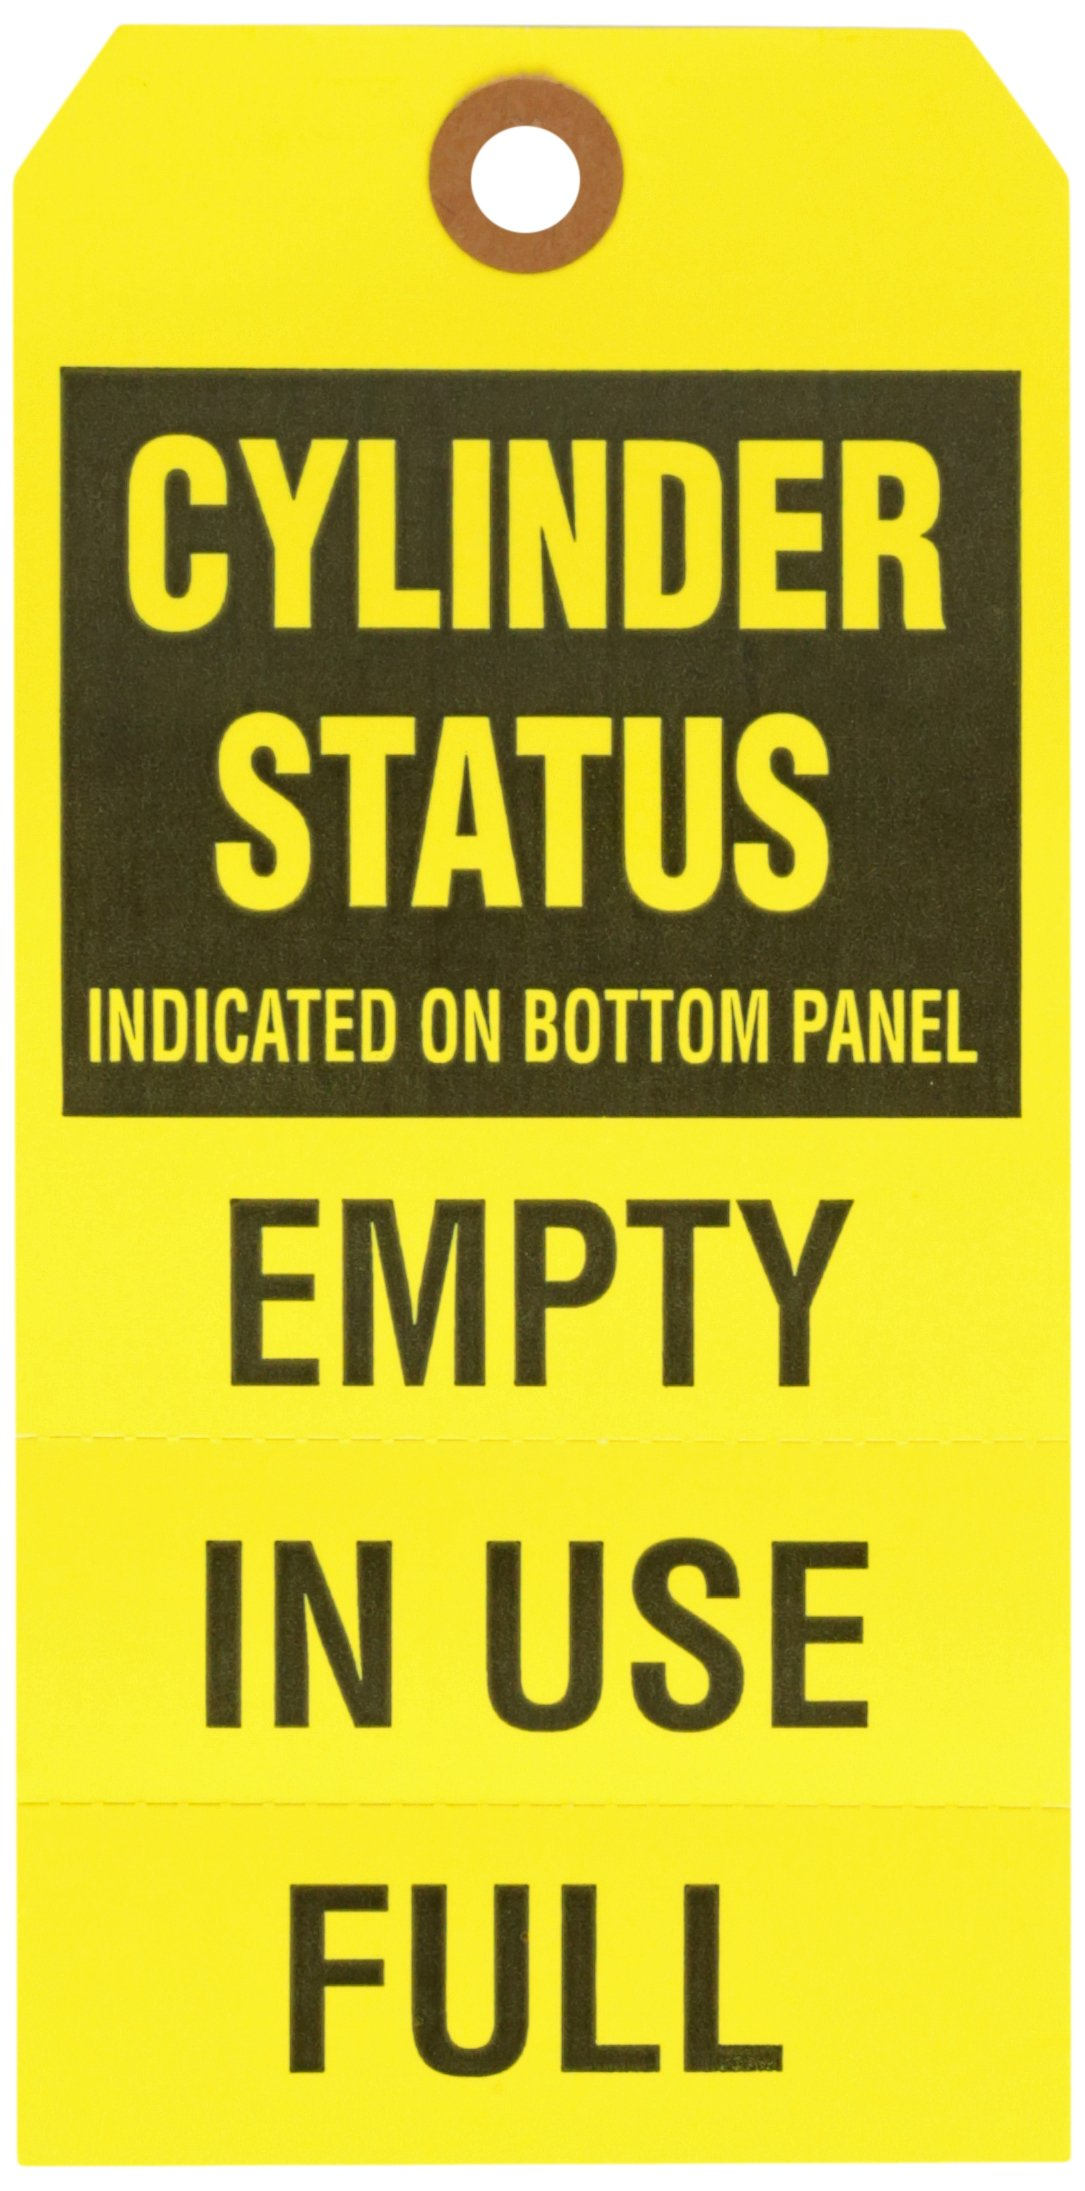 Brady 103669 6 1/4'' Height x 3 1/8'' Width, Cardstock, Black on Yellow Gas Cylinder Status Tags (25 Tags)